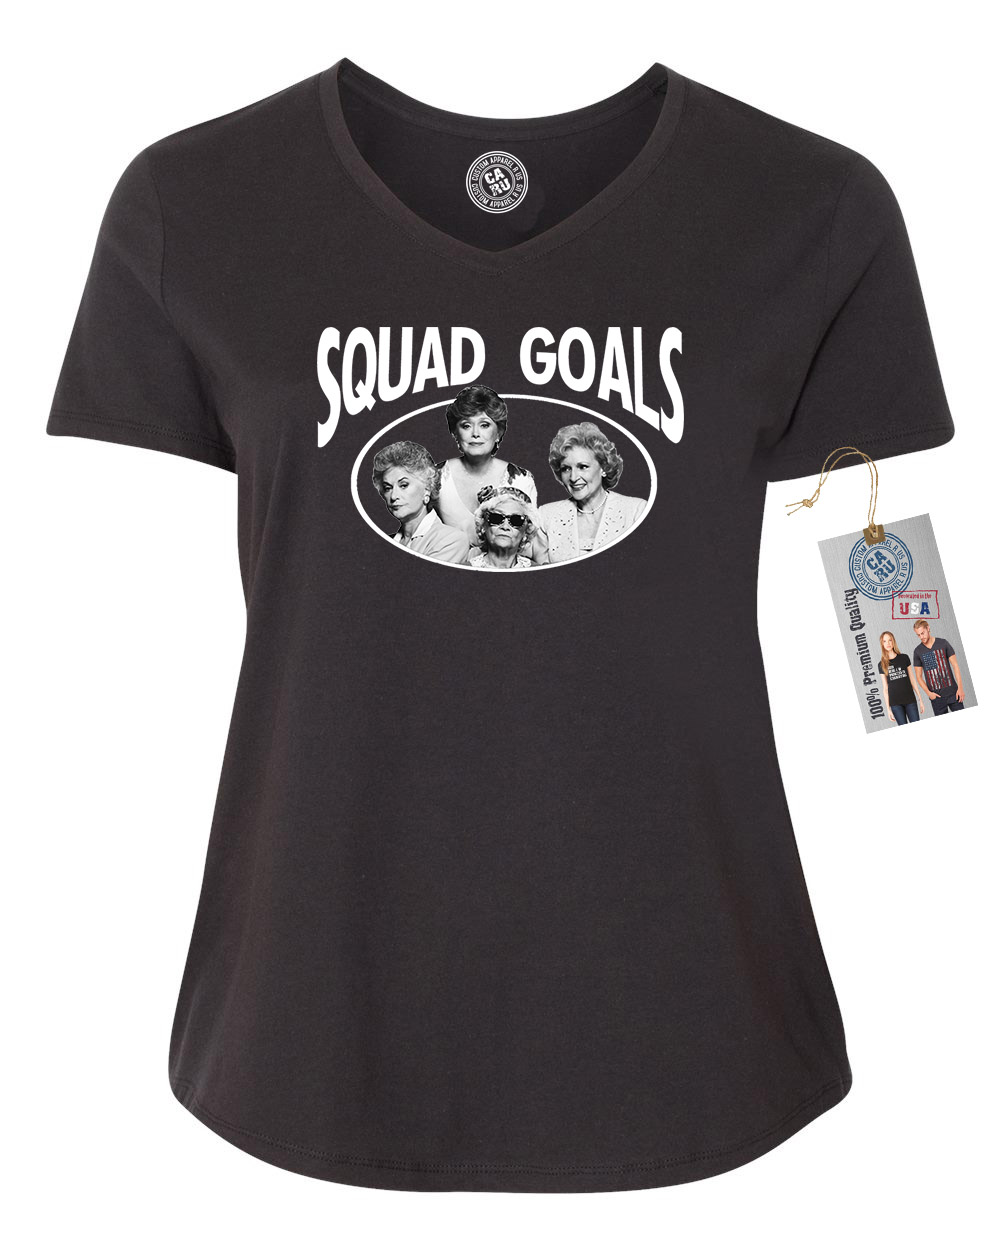 Golden Girls TV Show Squad Goals Plus Size Womens VNeck Shirt Top